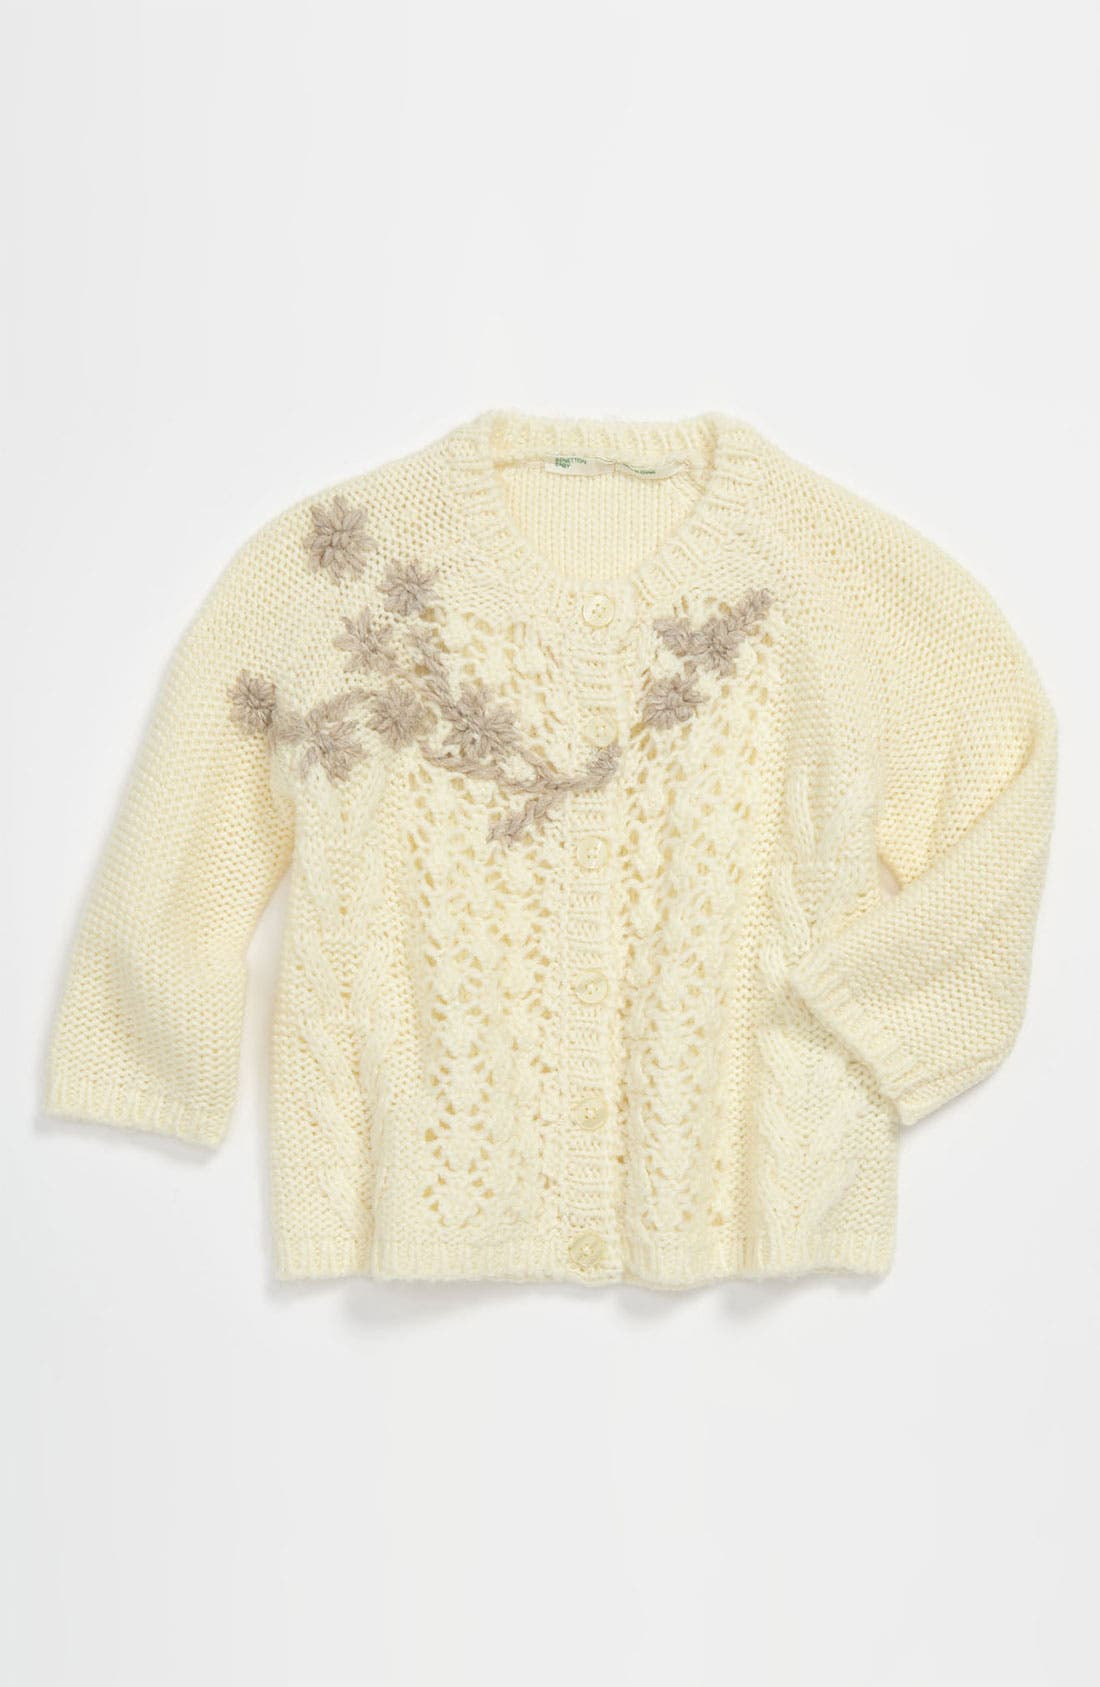 Alternate Image 1 Selected - United Colors of Benetton Kids Sweater (Infant)